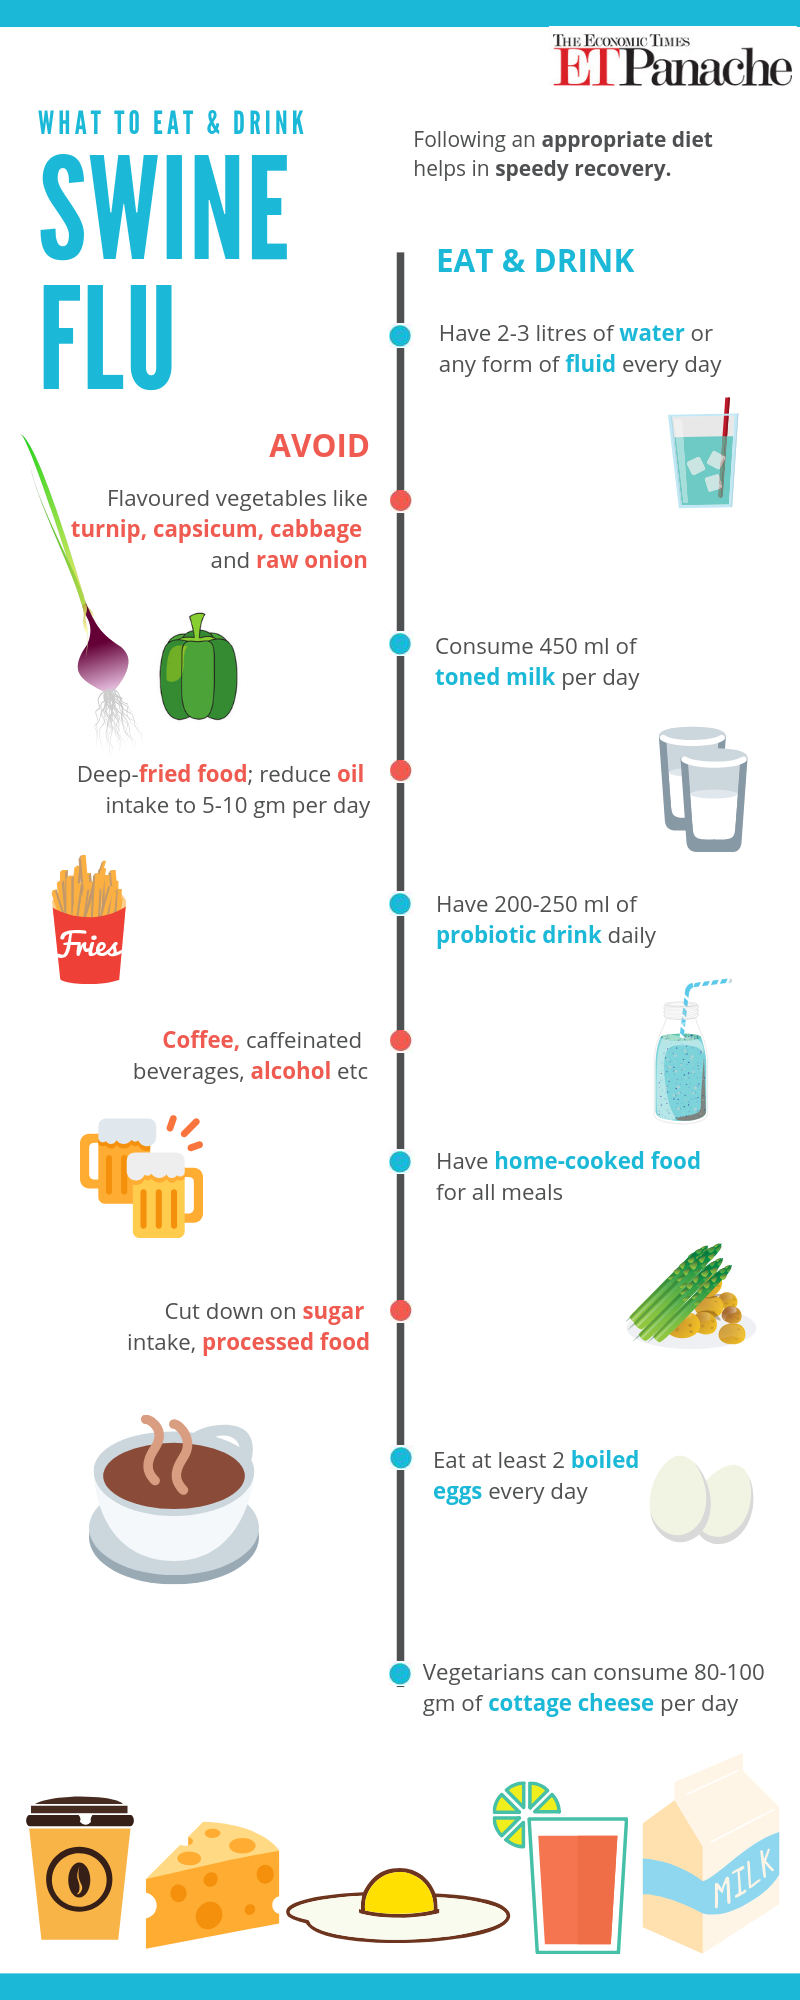 What to eat & drink, and what to avoid